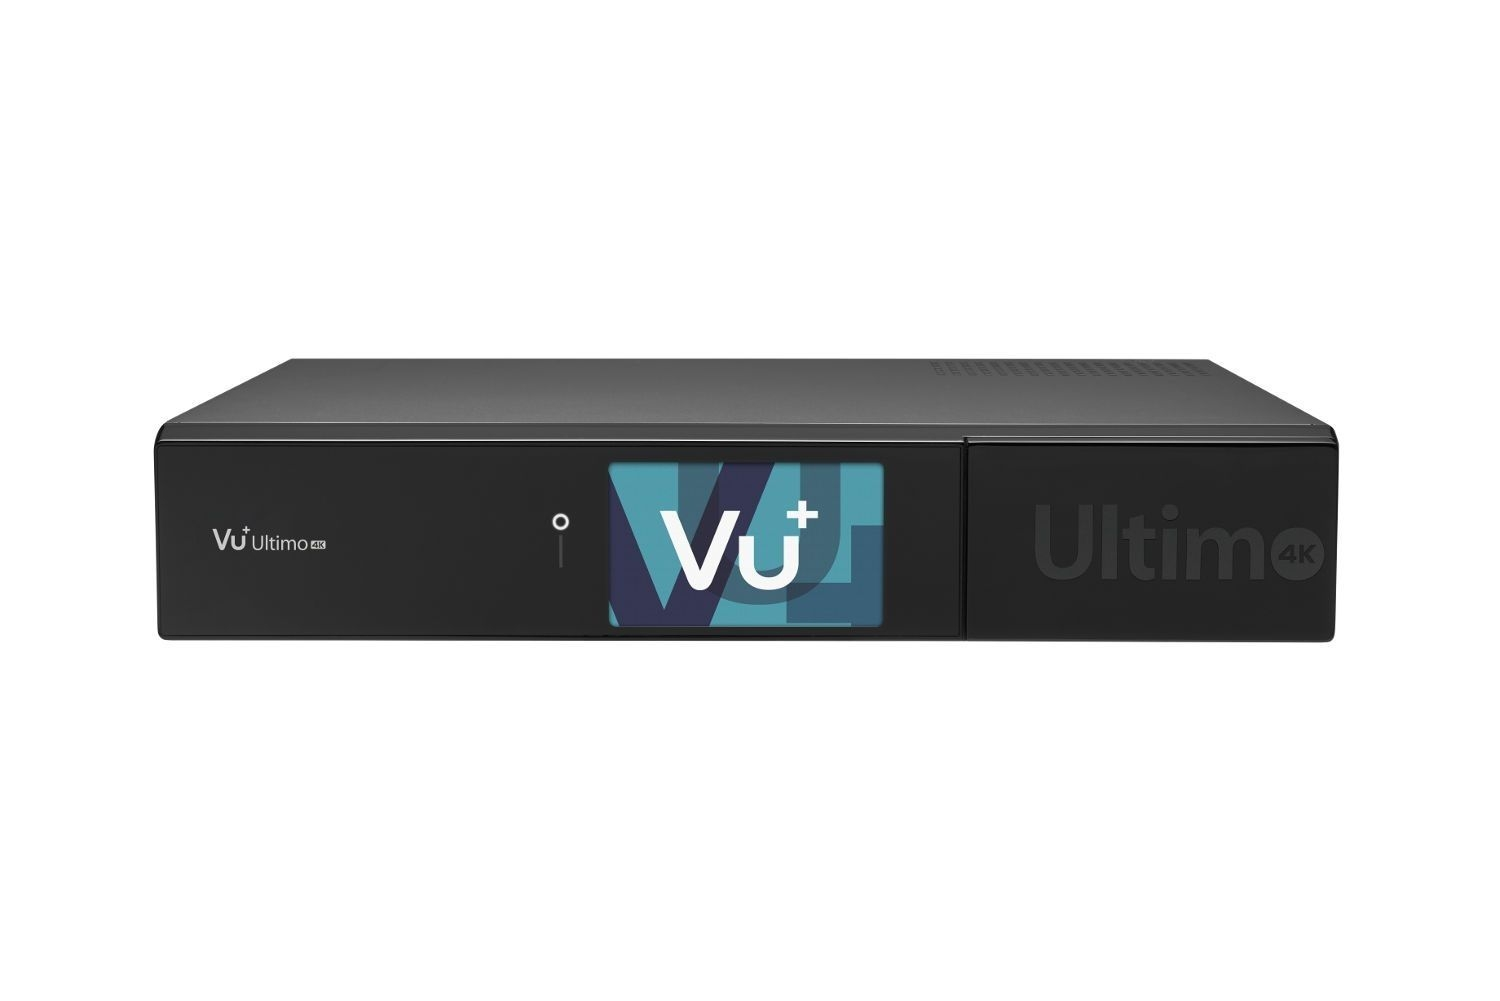 VU+ Ultimo 4K 2x DVB-C FBC / 1x DVB-S2 Dual Tuner 4 TB HDD Linux Receiver UHD 2160p